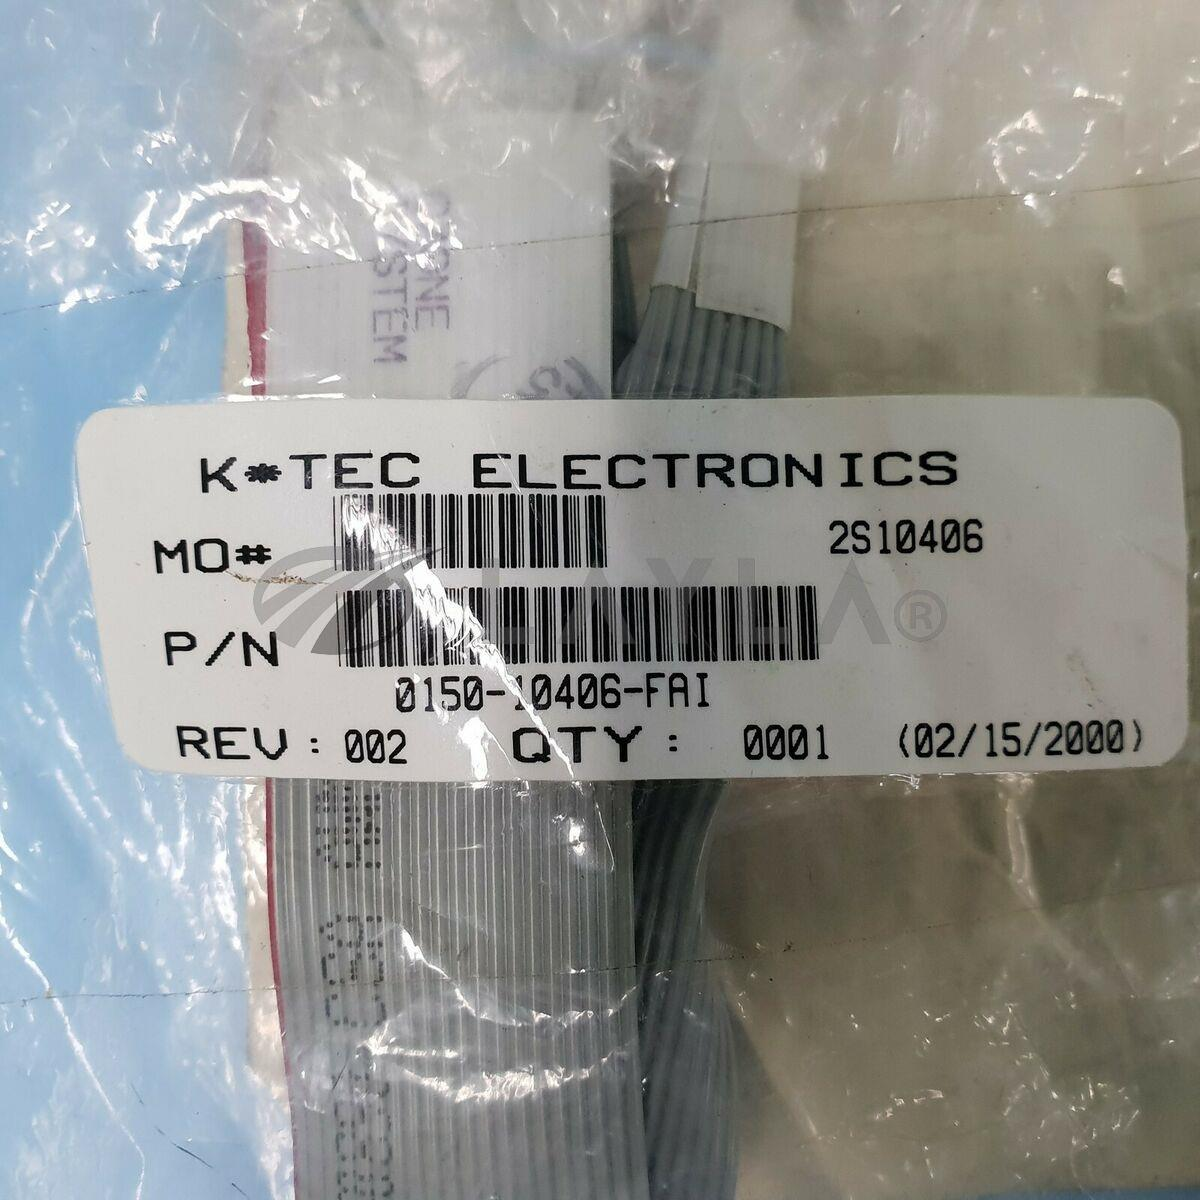 0150-10406/-/142-0502// AMAT APPLIED 0150-10406 CABLE, ASSY., MFC, 24 LONG OZ NEW/AMAT Applied Materials/-_03